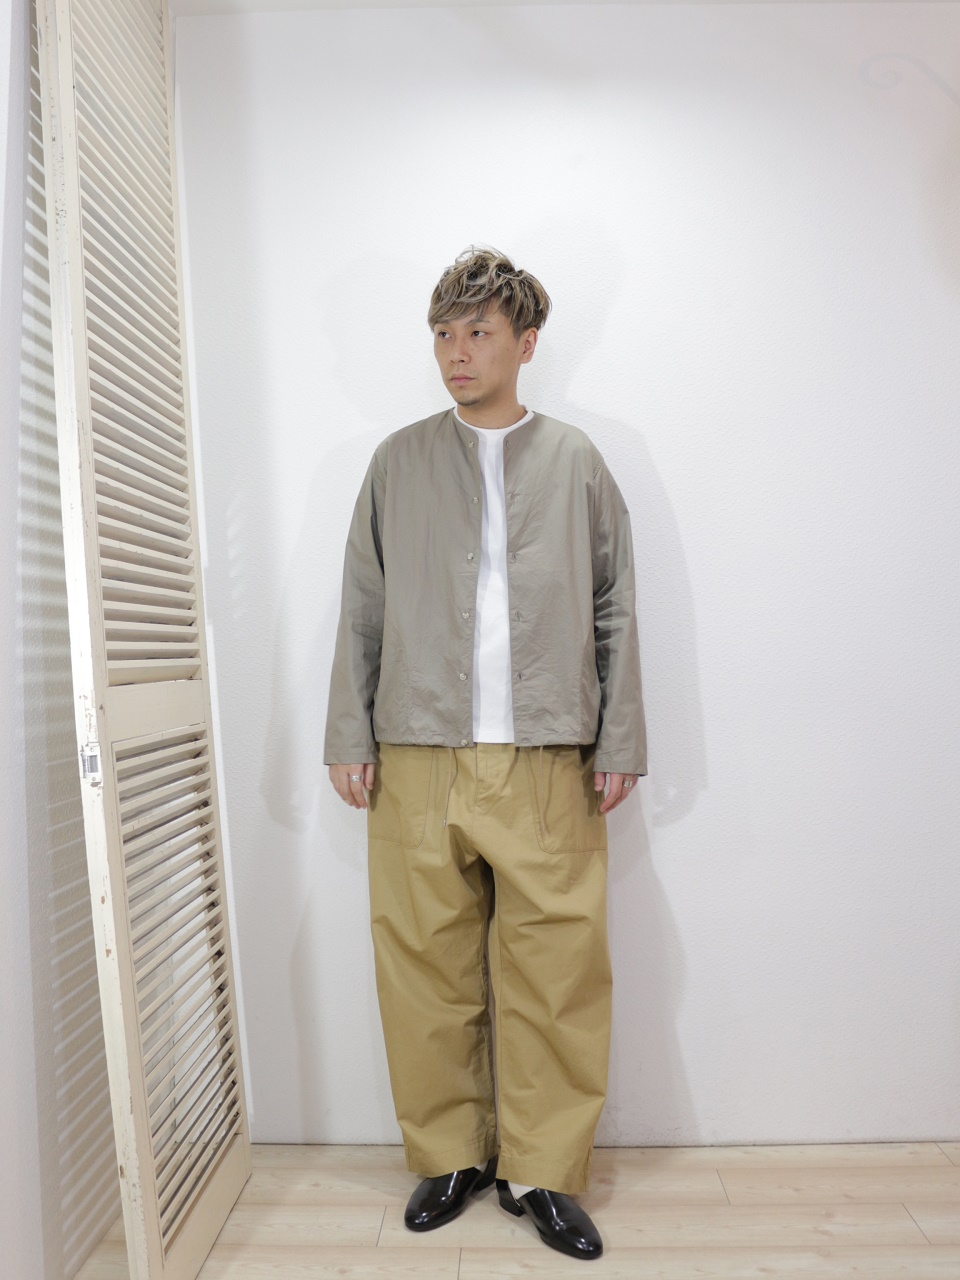 outer/MANUAL ALPHABET-TWILL BB SHT(SIZE 1)tee/MANUAL ALPHABET-MILITARY FRAISE CREW NECK L/S TEE(SIZE 1)pants/KAFIKA-FLANDERS LINEN DECK PANTS(SIZE 2)socks/decka-PLAIN MERCERIZATION SOCKS(SIZE MEN)を使ったコーディネート